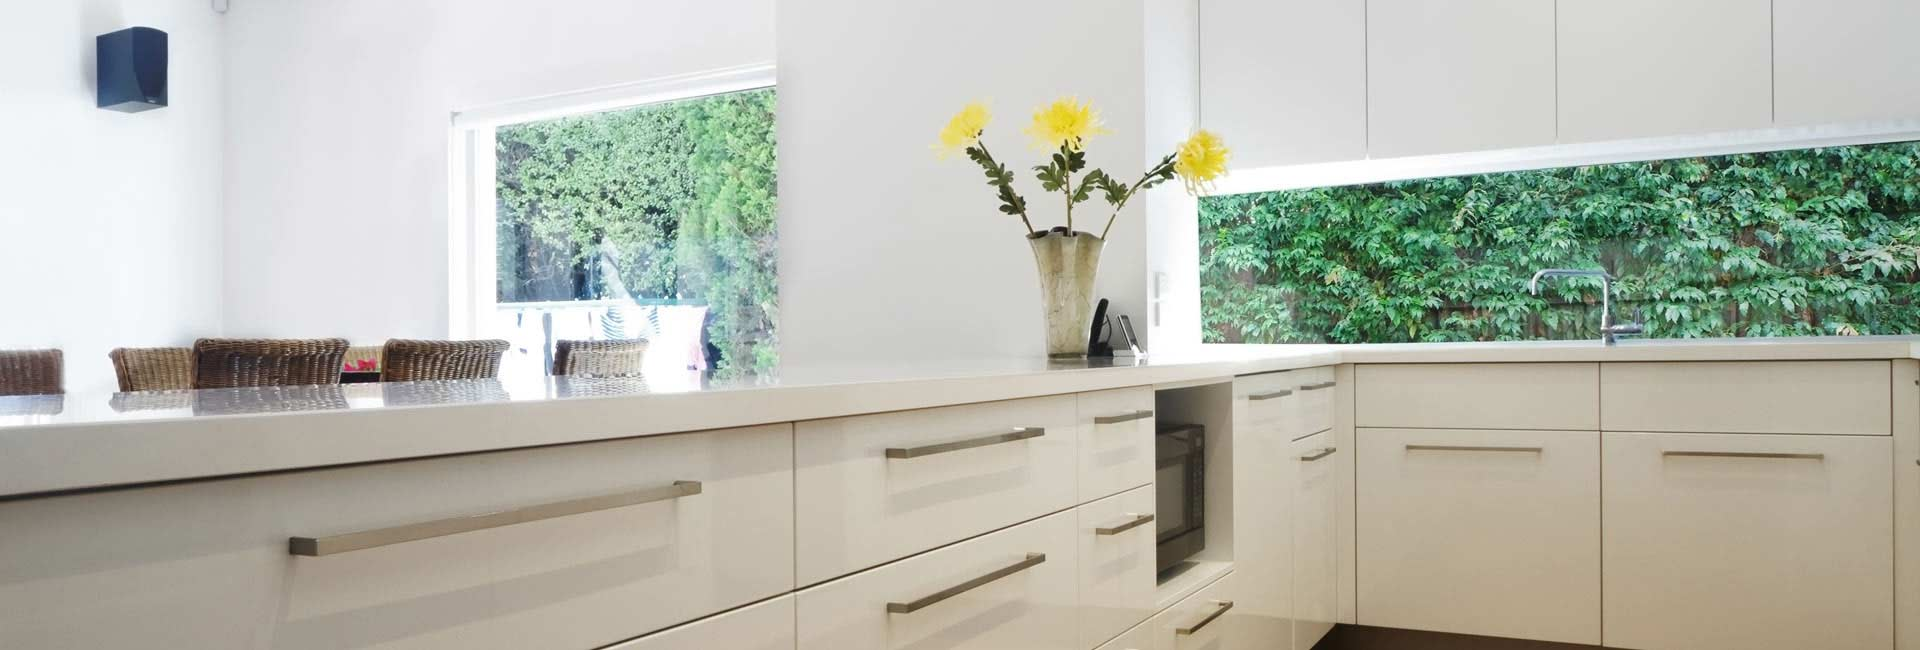 Diy Flat Pack Kitchens Flat Pack Kitchens Townsville Jones Easy Cut